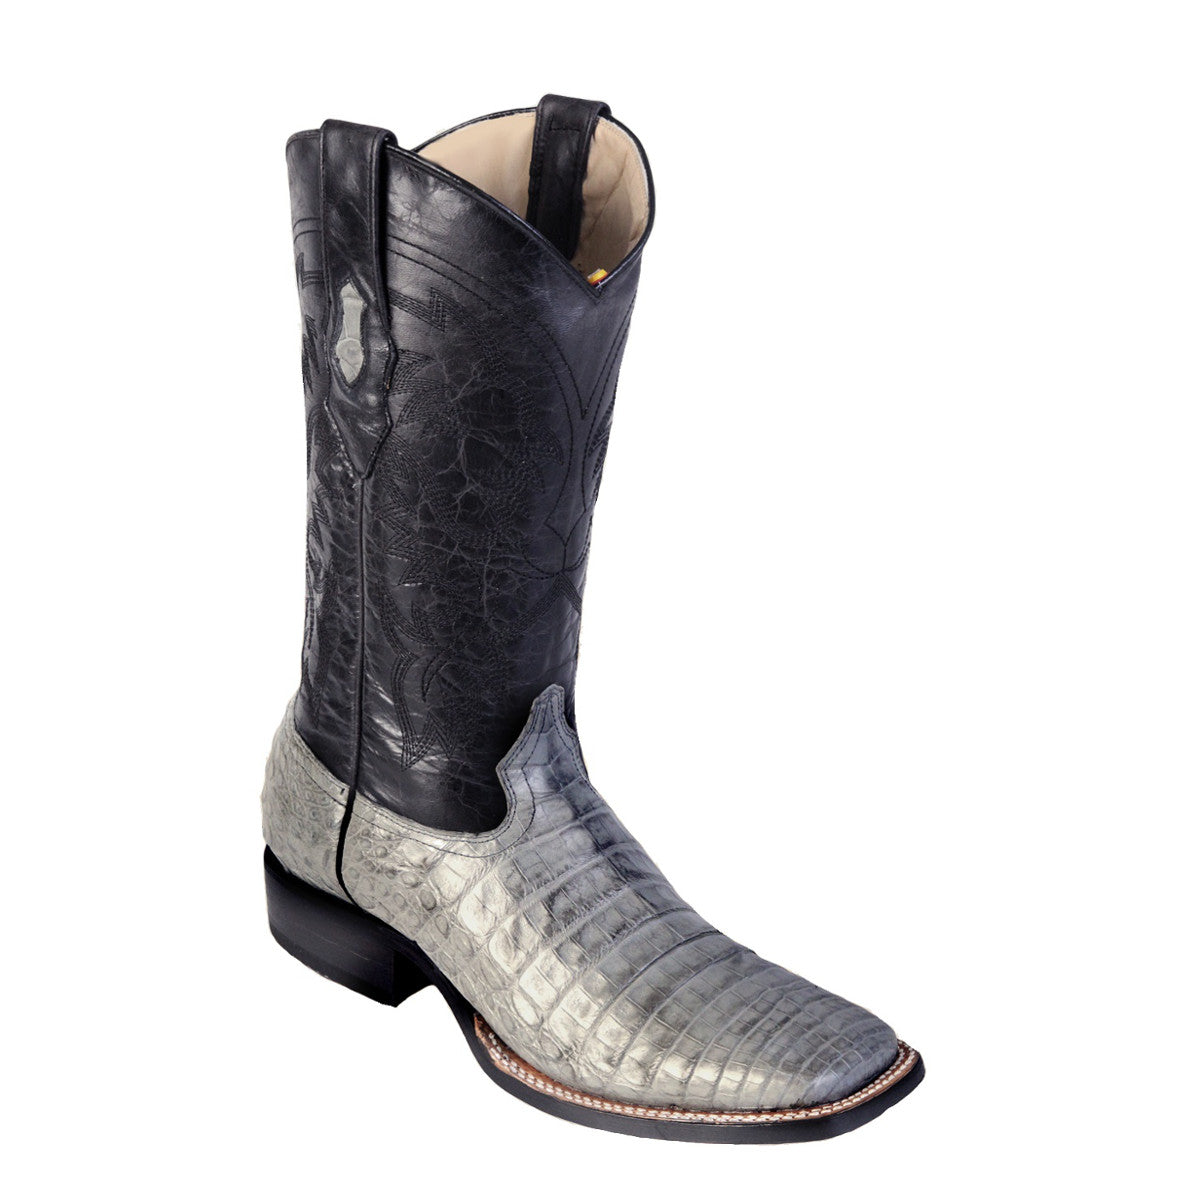 Los Altos Boots H82 Wide Square Toe Caiman Belly - Gray